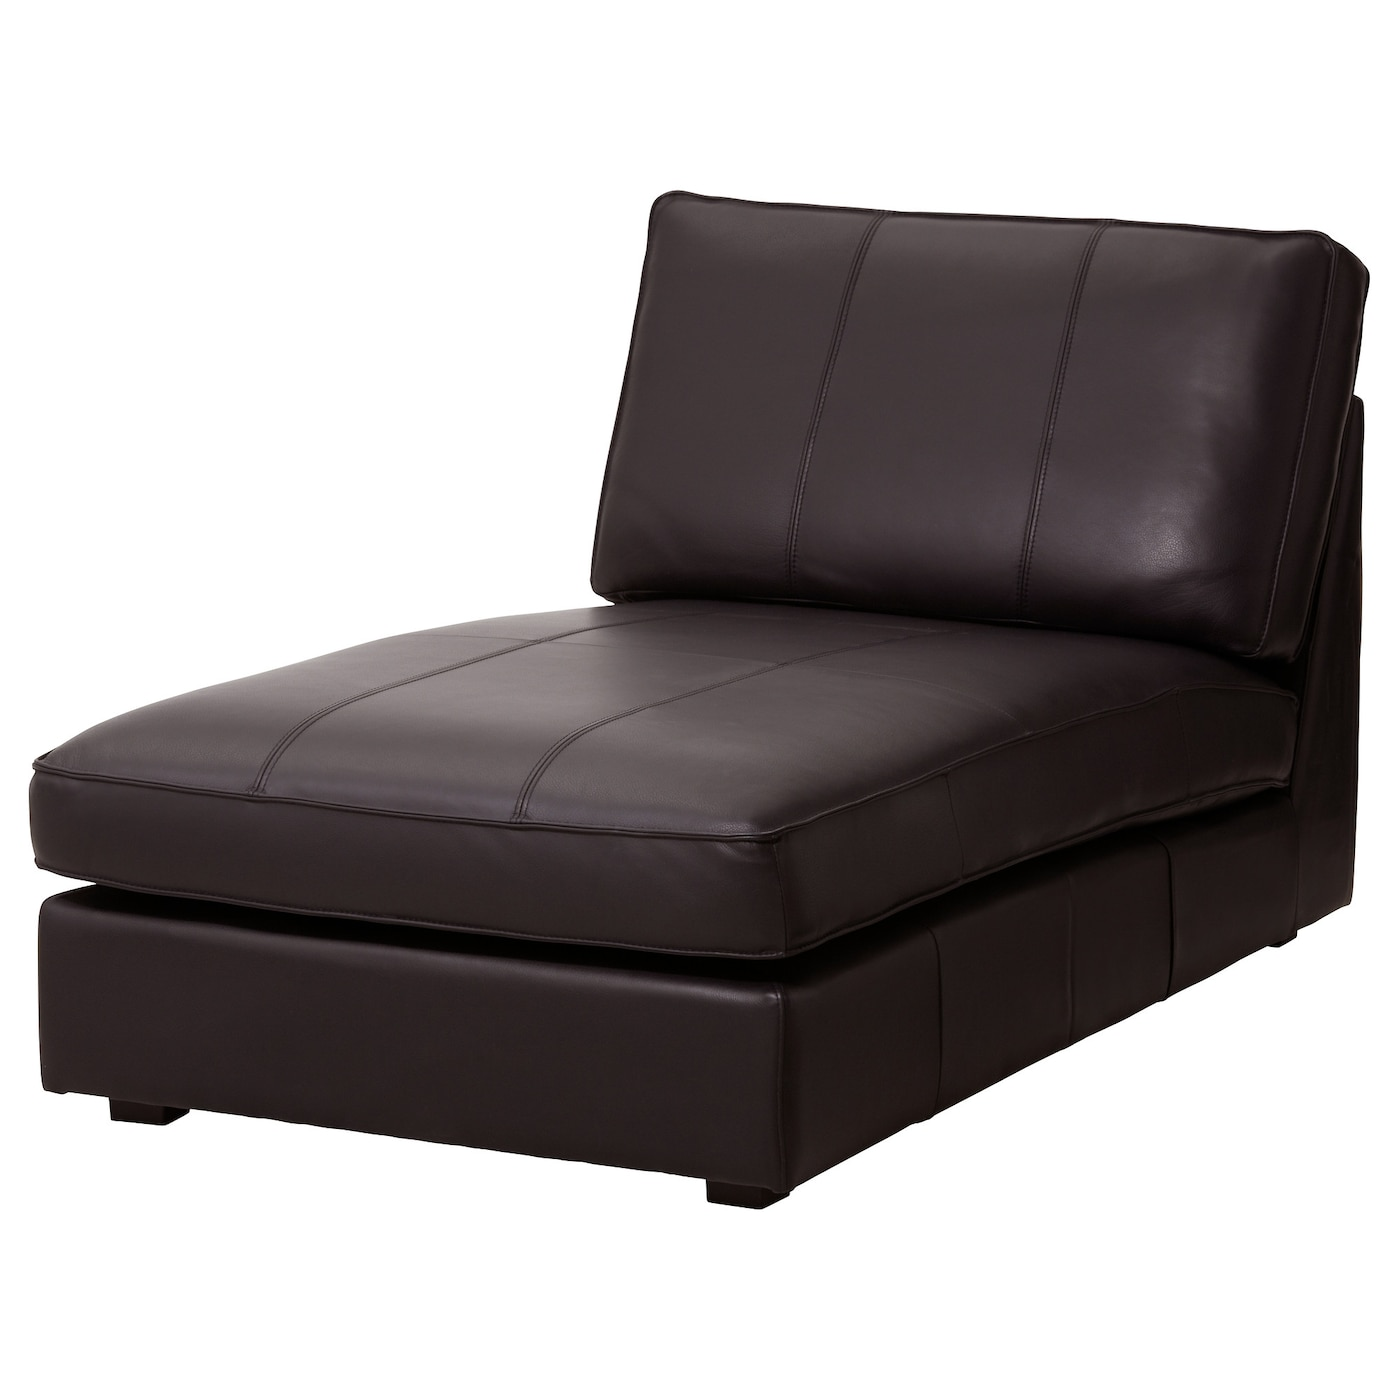 Leather & Coated Fabric Chaise Longues